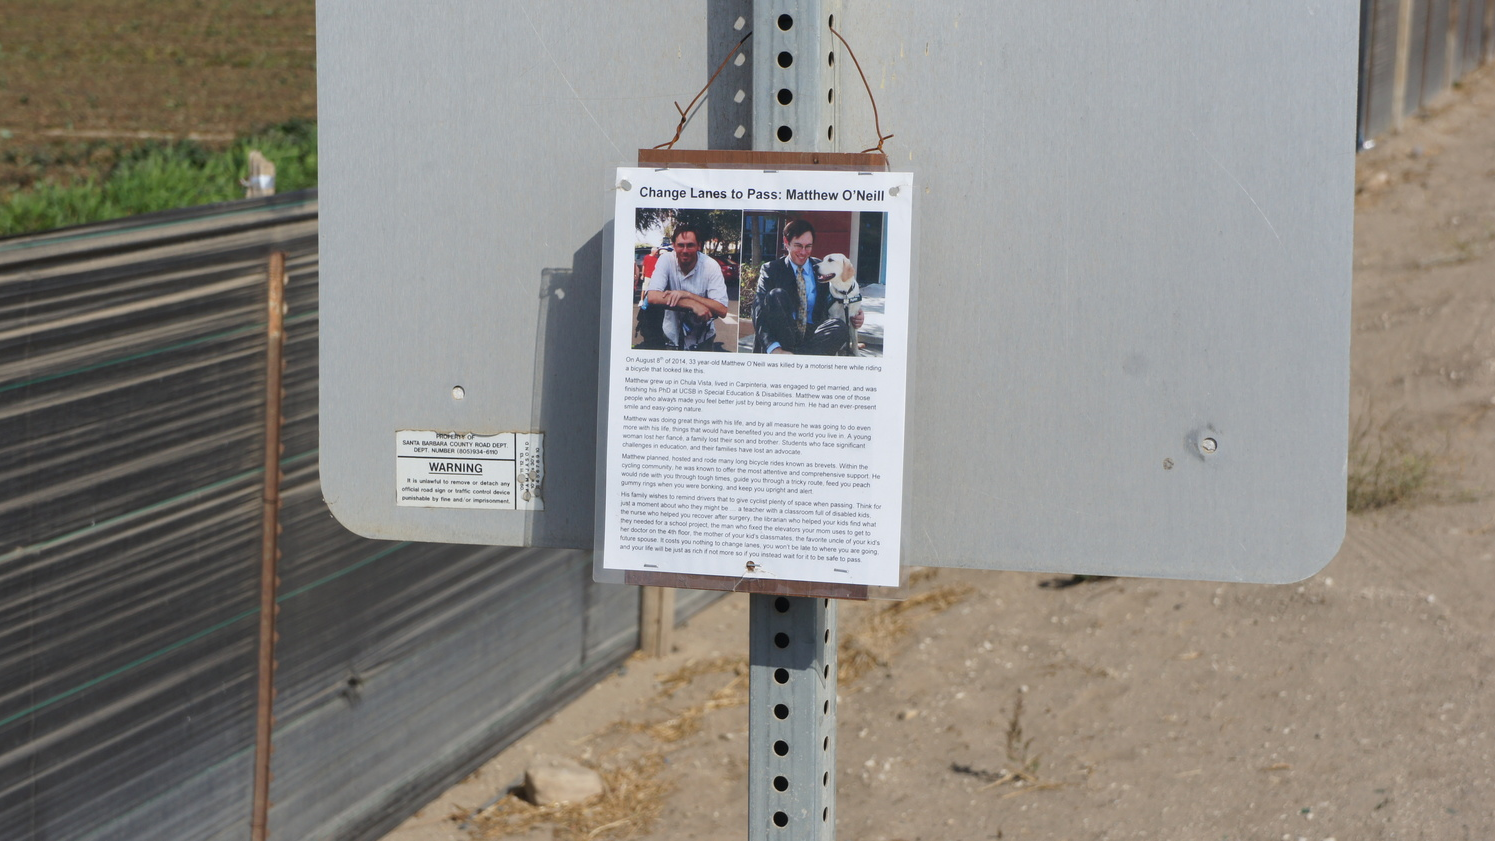 Memorial write-up about Matthew O'Neill left on Foxen Canyon Road with the Ghost Recumbent Bike